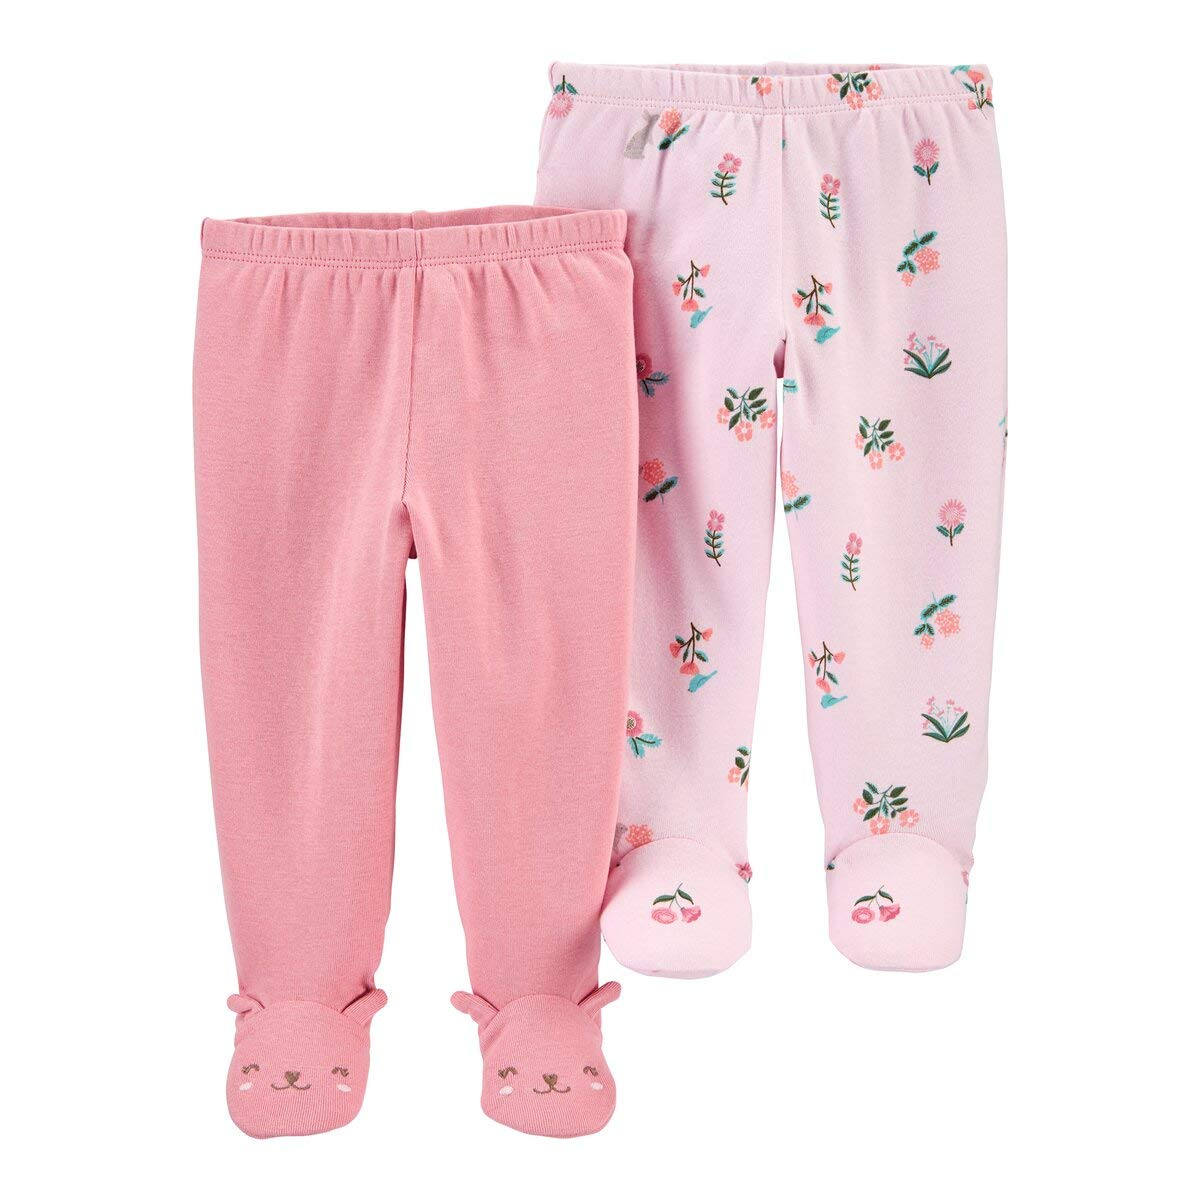 LEGGINGS  SIZE 3,6,9,12 MO baby clothe NWT CARTER/'S 2 PACK BABY GIRL SOFT PANTS